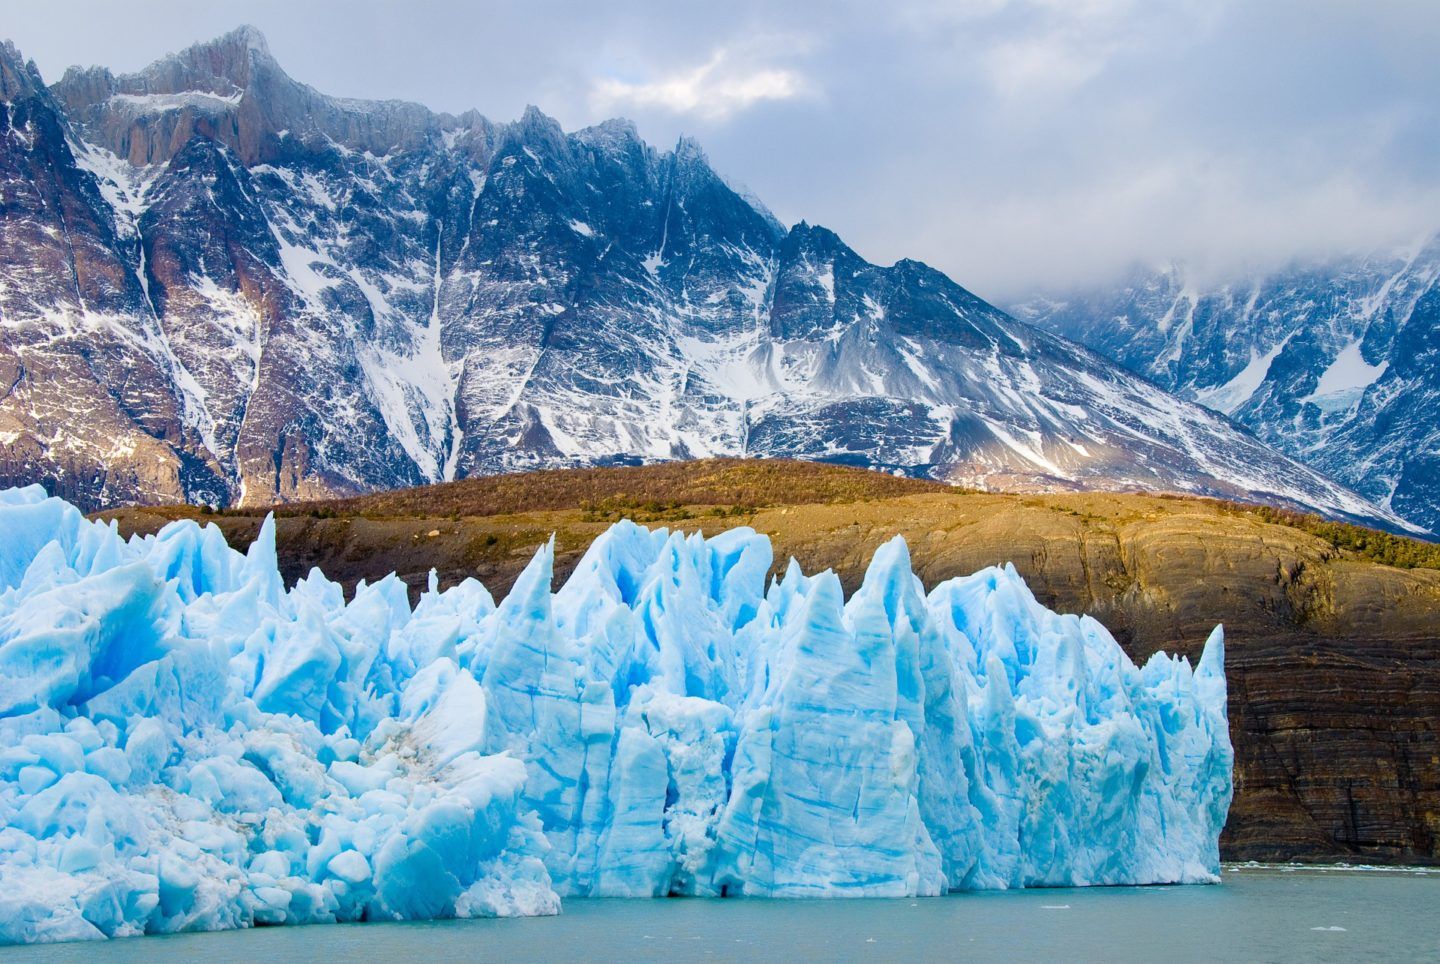 Best Off-The-Beaten-Track Spots in Patagonia